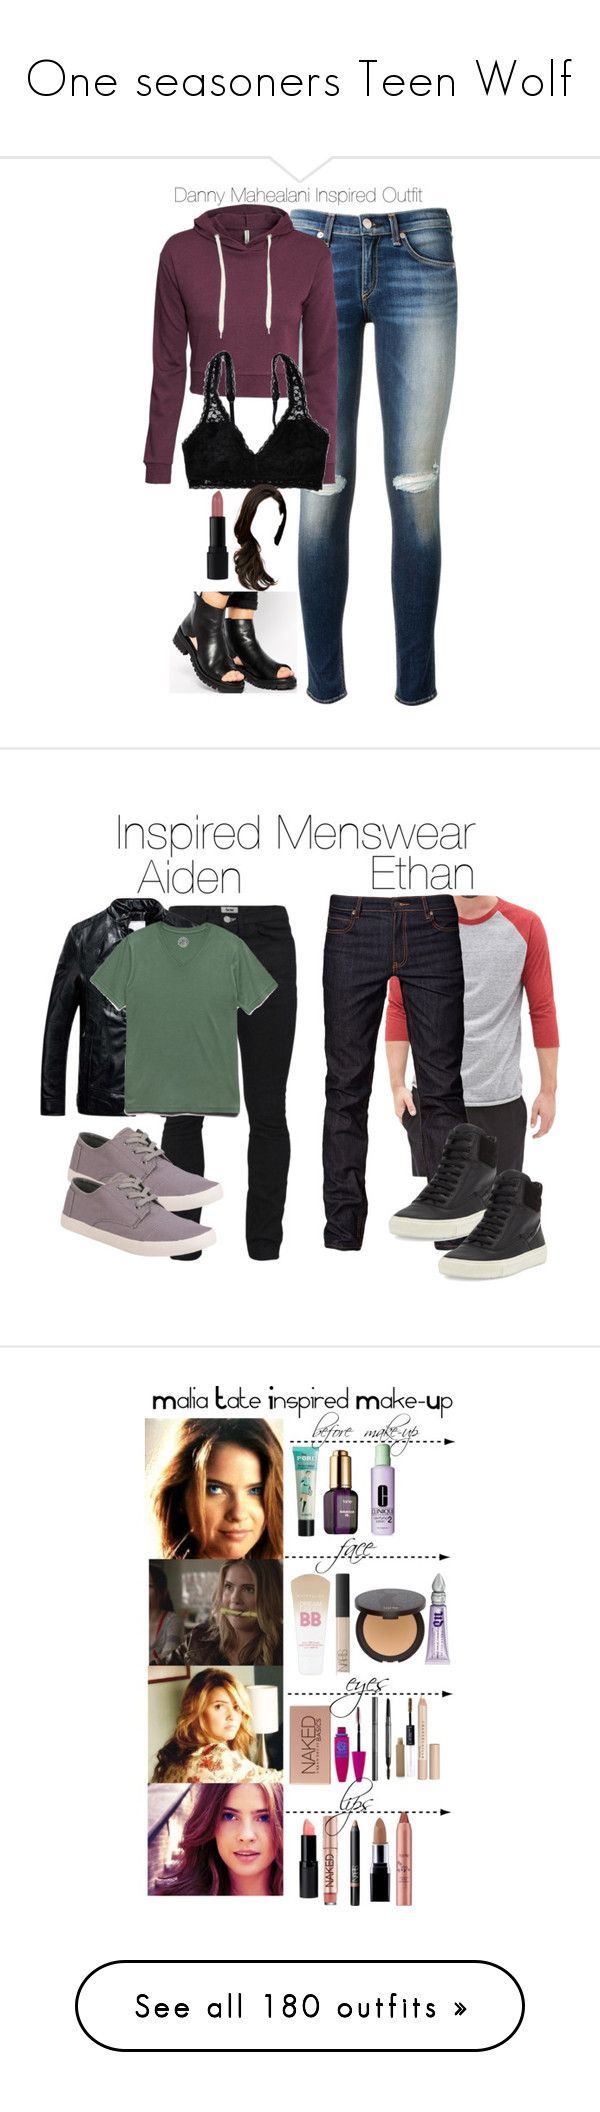 """One seasoners Teen Wolf"" by samtiritilli666lol ❤ liked on Polyvore featuring rag & bone, H&M, ASOS, Aerie, INIKA, tw, dannymahealani, 21 Men, Cheap Monday and Acne Studios"